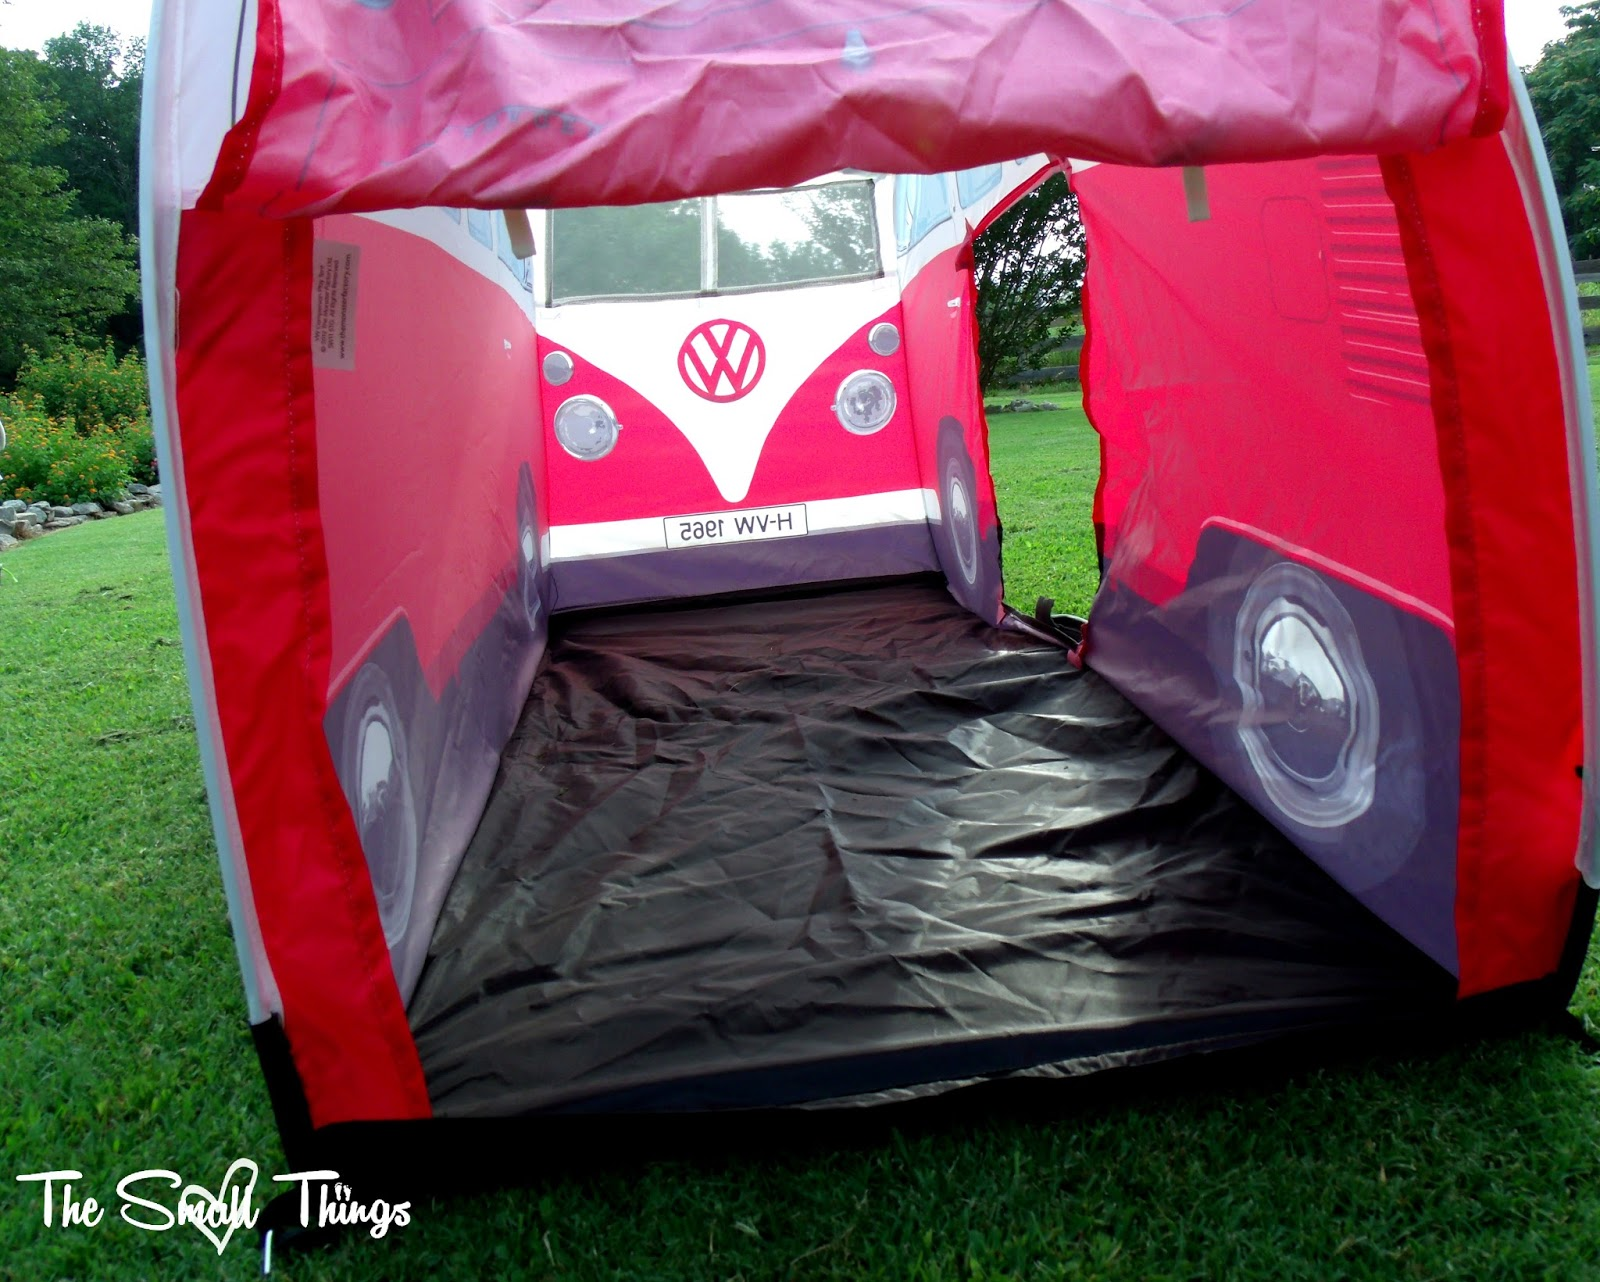 The Monster Factory USA [Volkswagen Kids Tent Review] & The Monster Factory USA [Volkswagen Kids Tent Review] ~ The Small ...